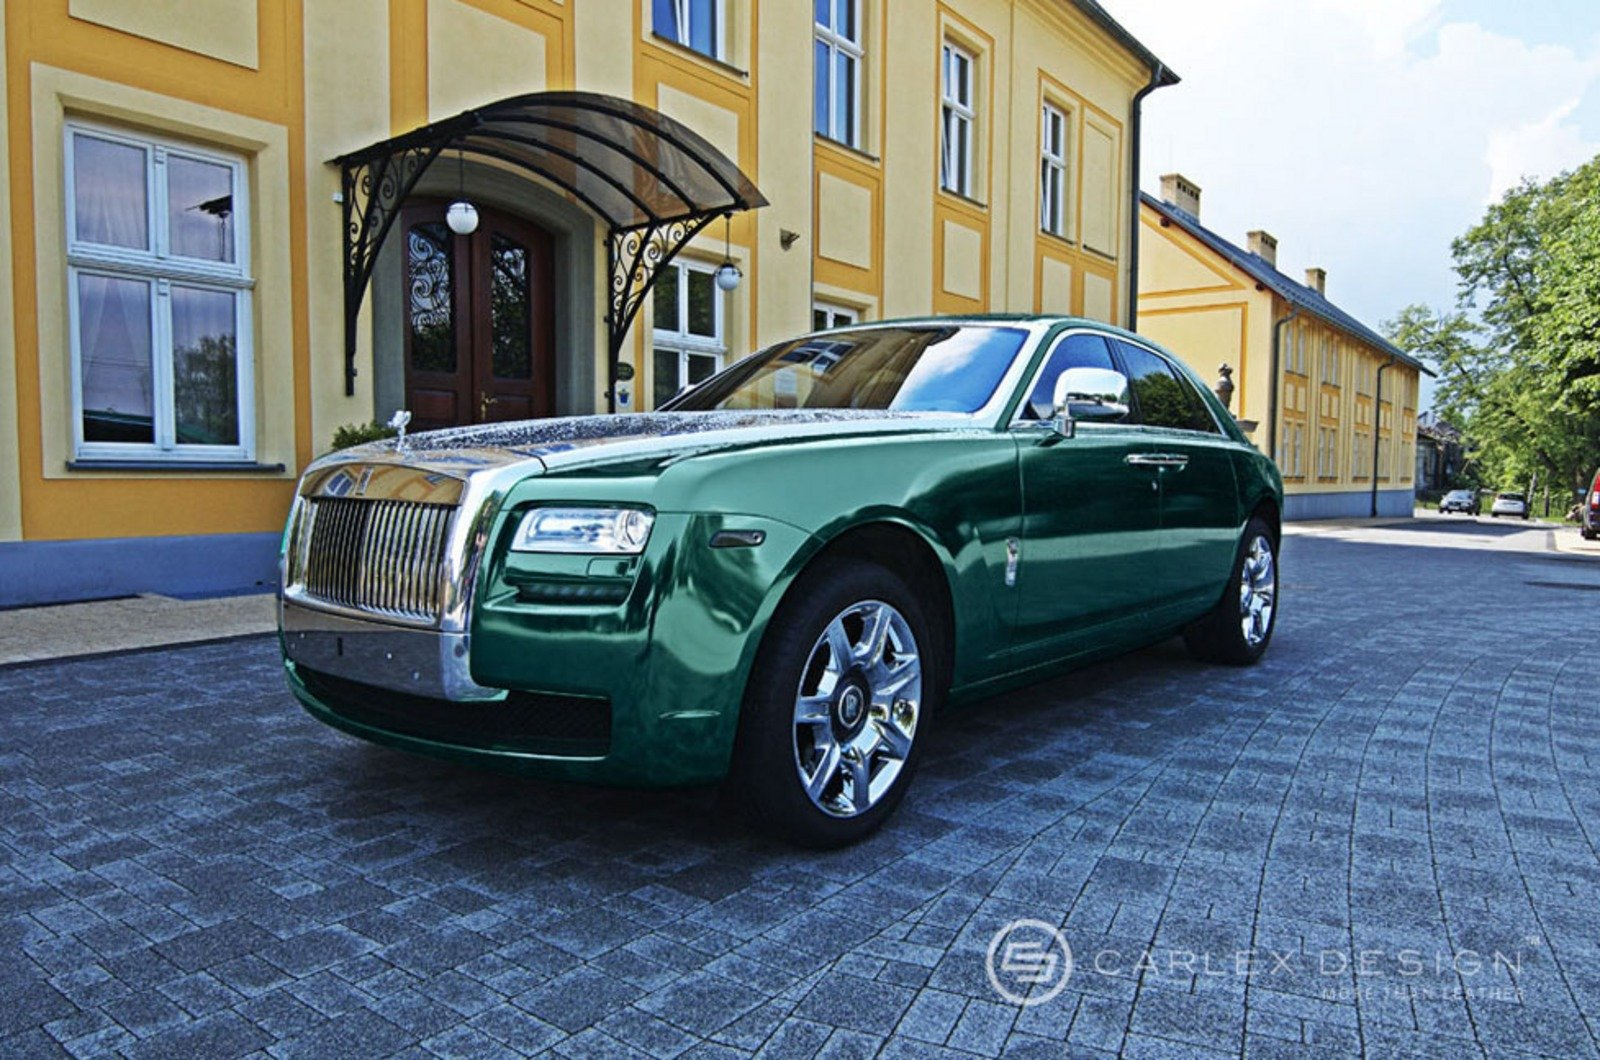 2012 Rolls Royce Ghost By Carlex Design Review Top Speed